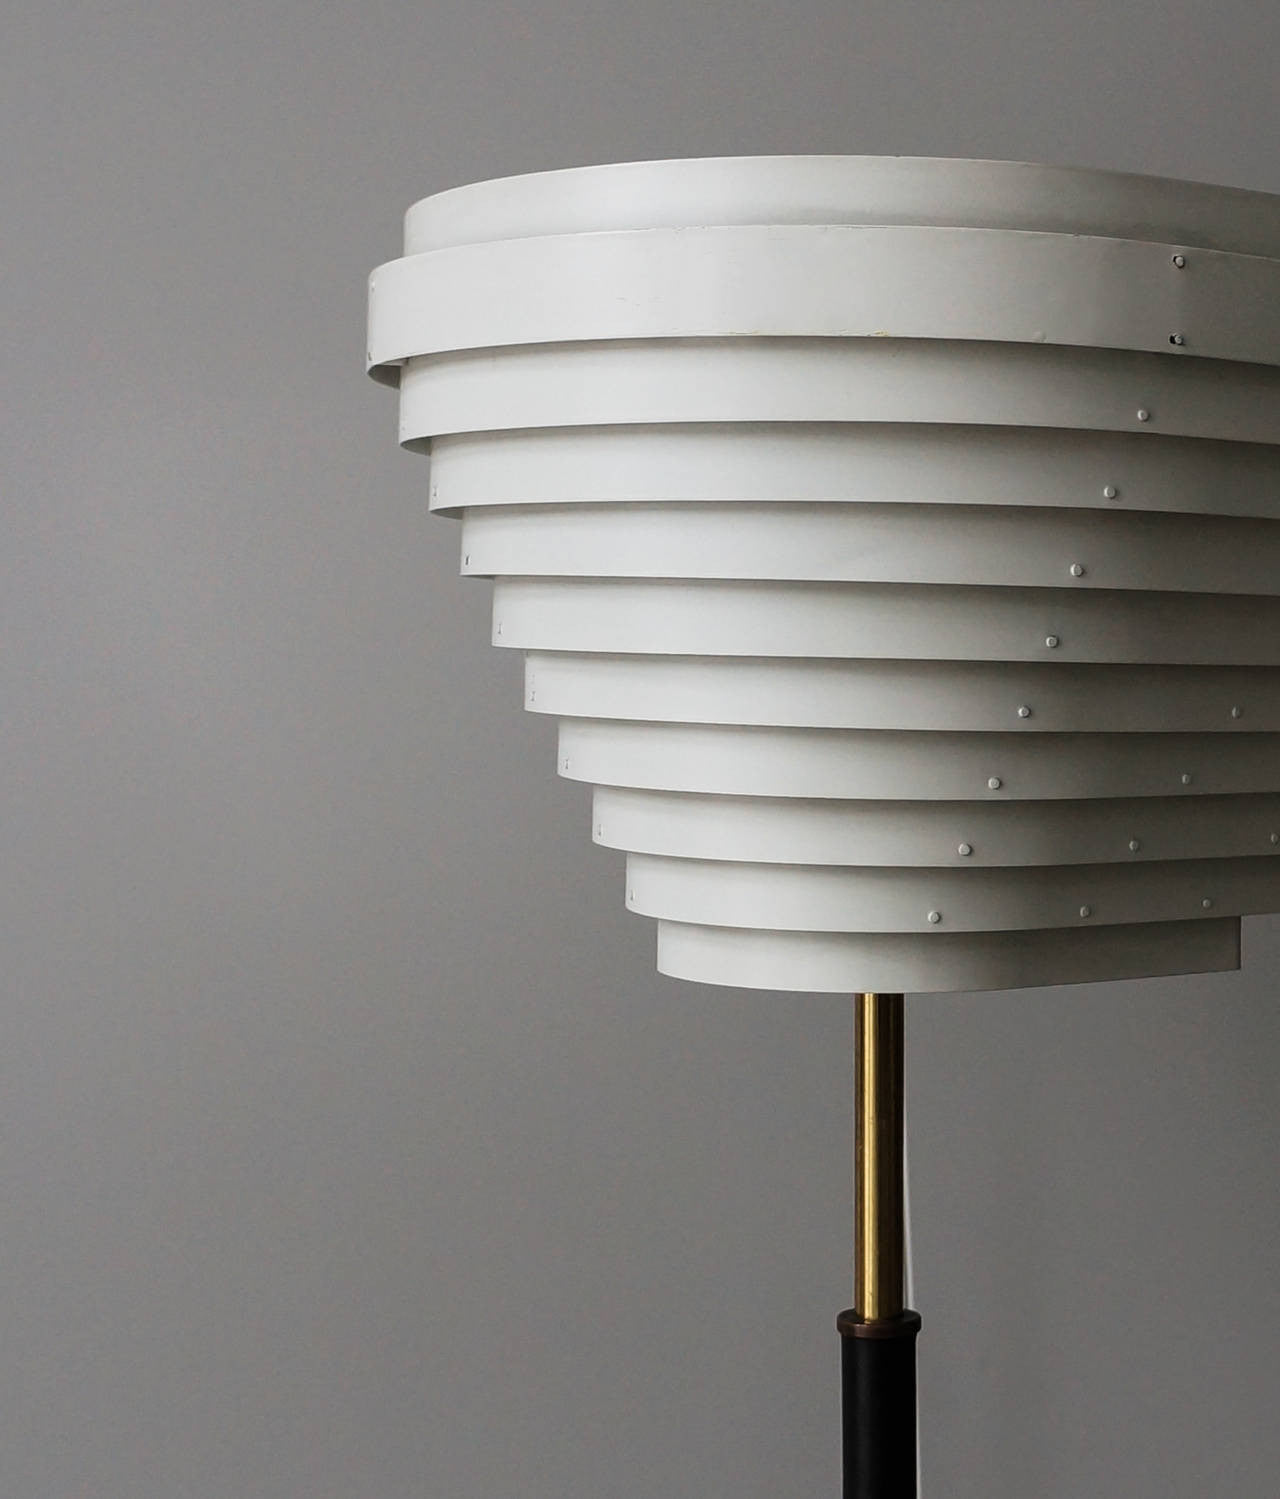 Early Alvar Aalto Floor Lamp, Model A805 for Valaistustyö Ky, 1954